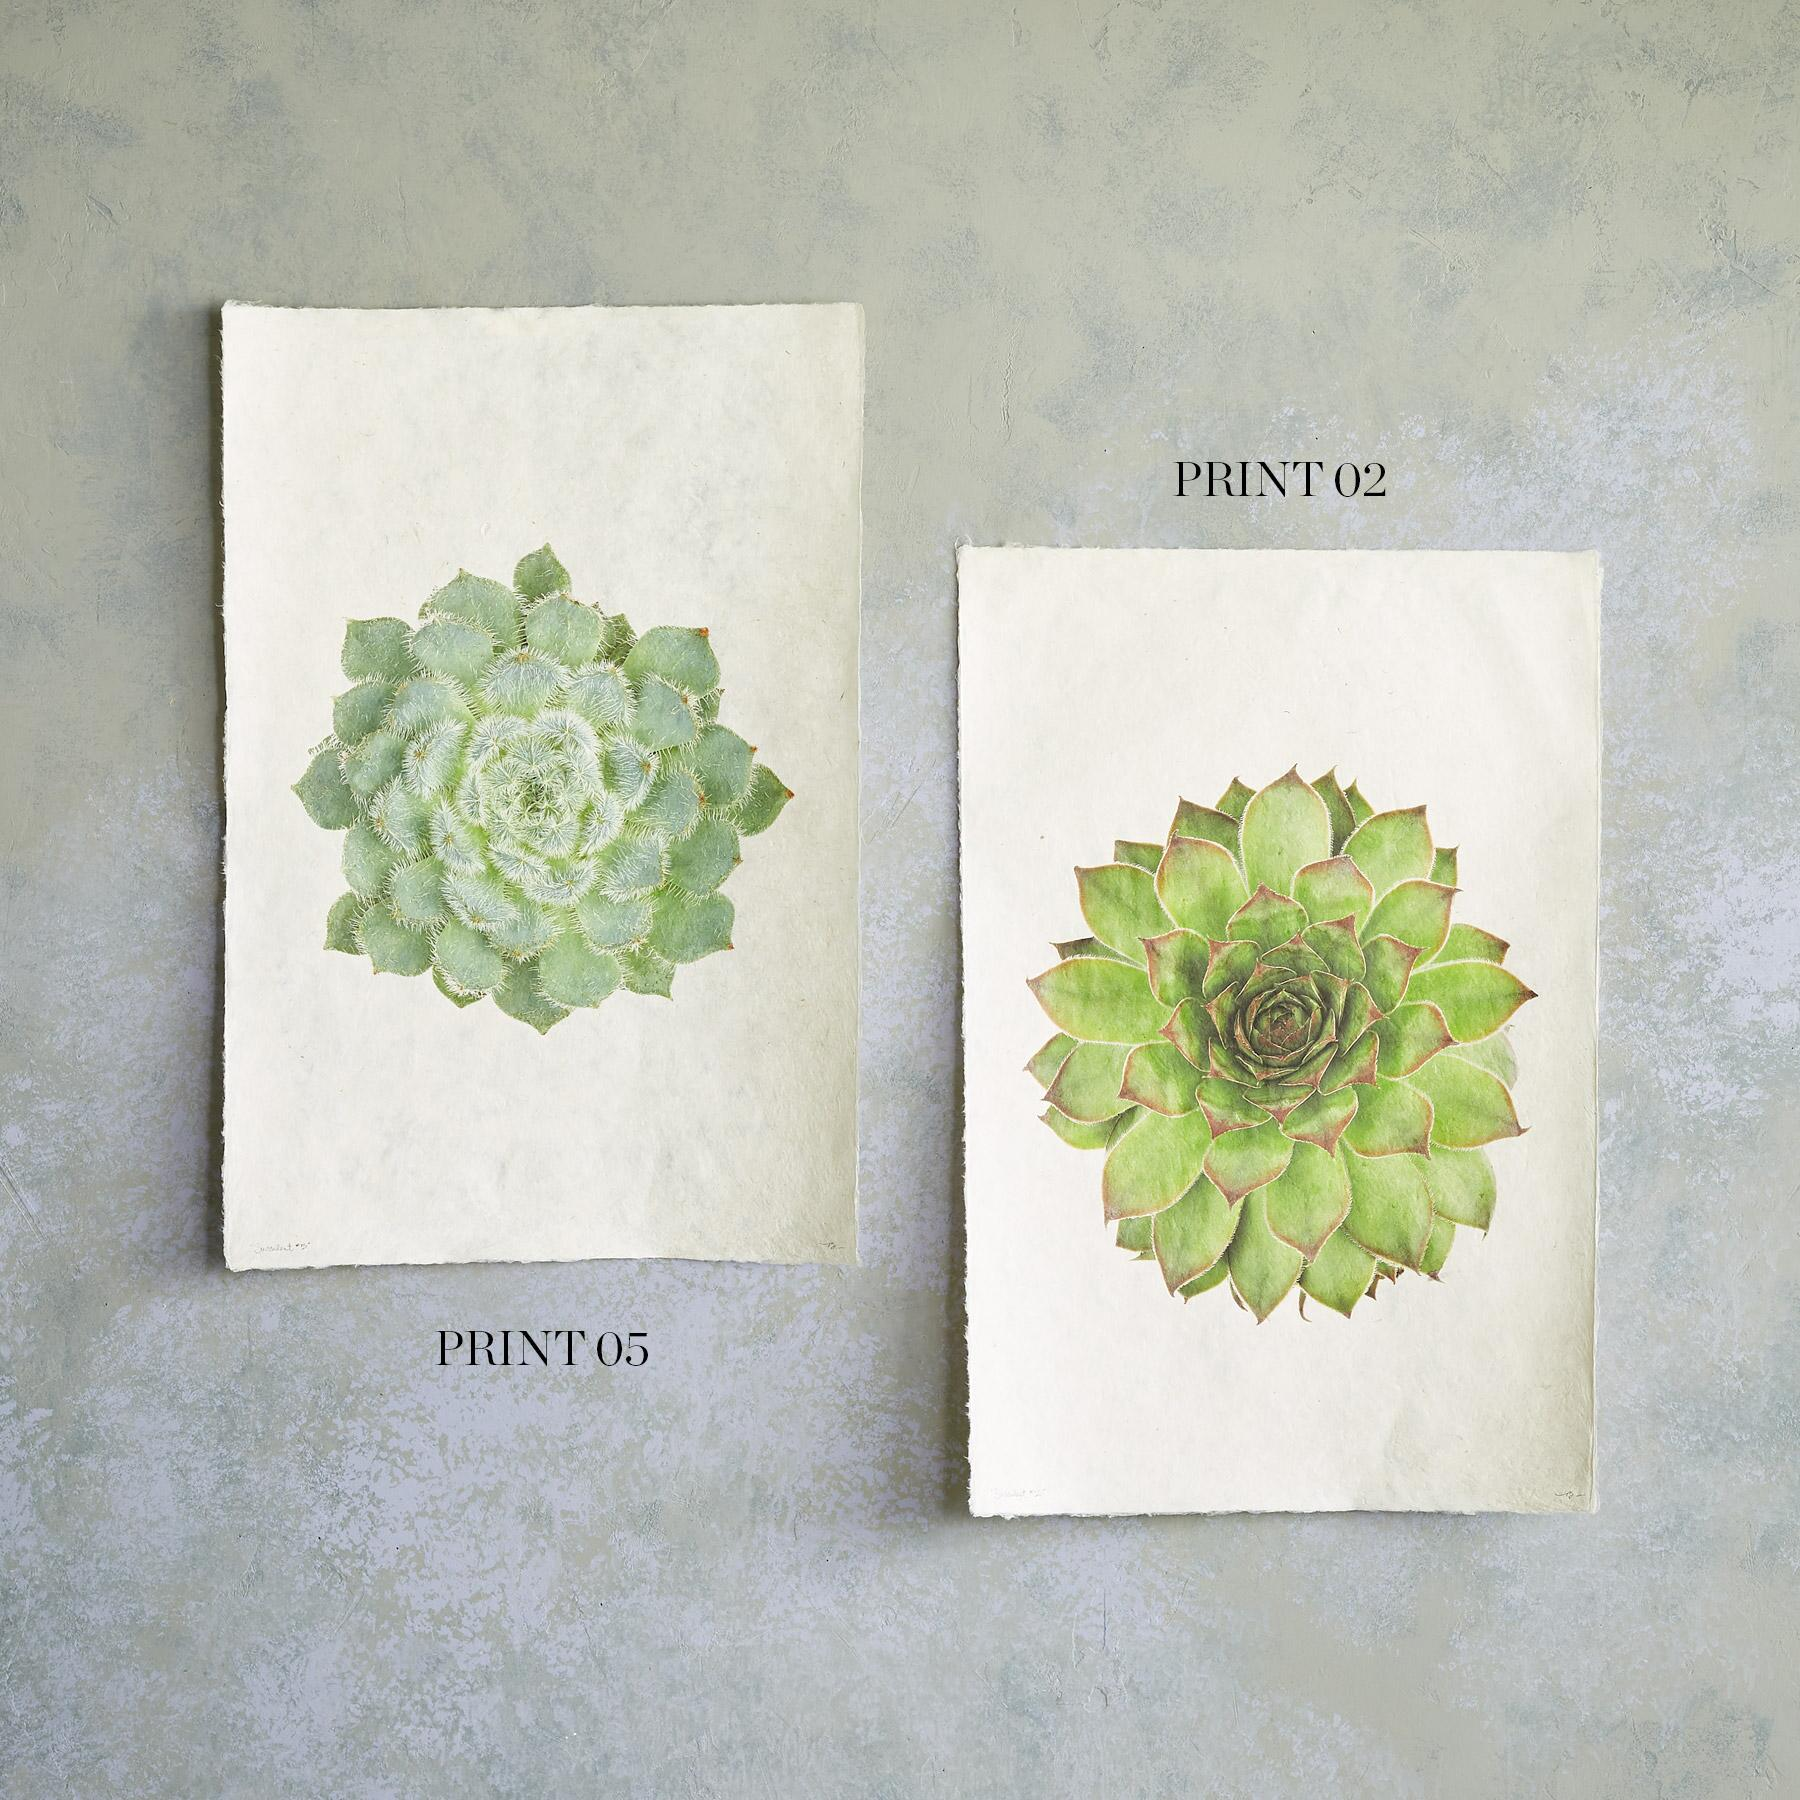 SUCCULENT STUDIES PRINTS: View 2